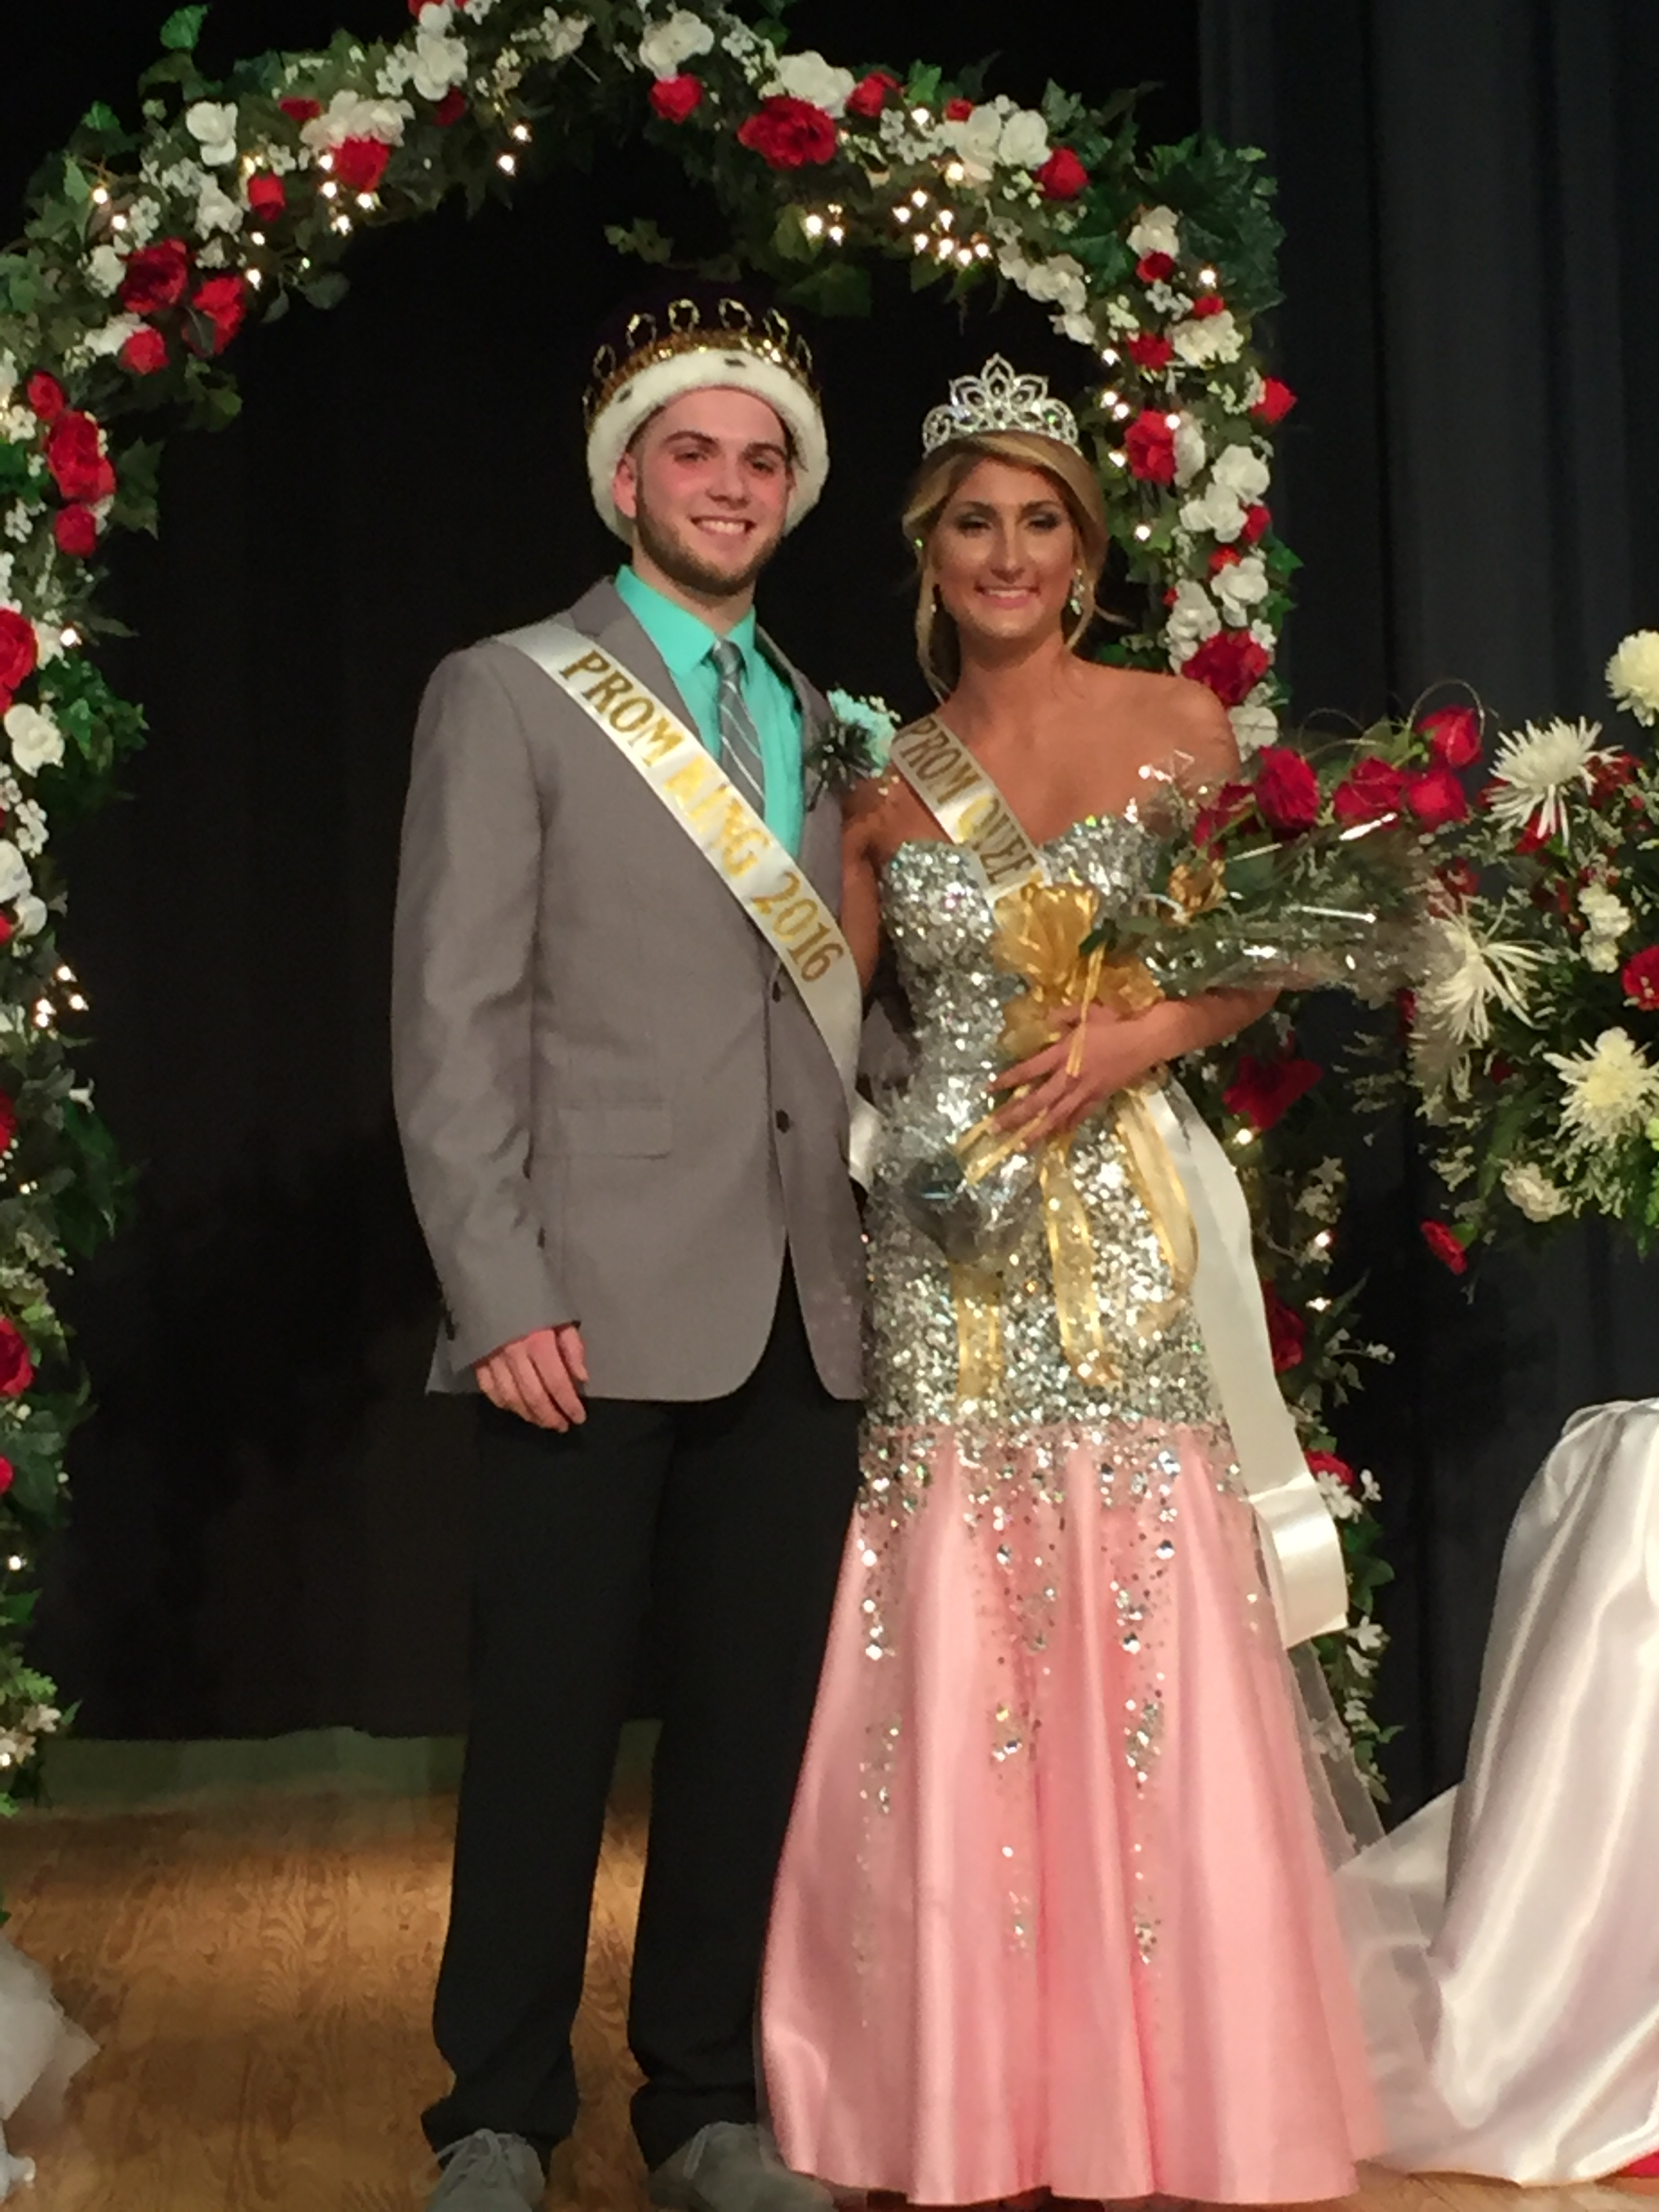 Congratulations to the 2016 prom King and Queen, Matthew Callahan and Logan Likens